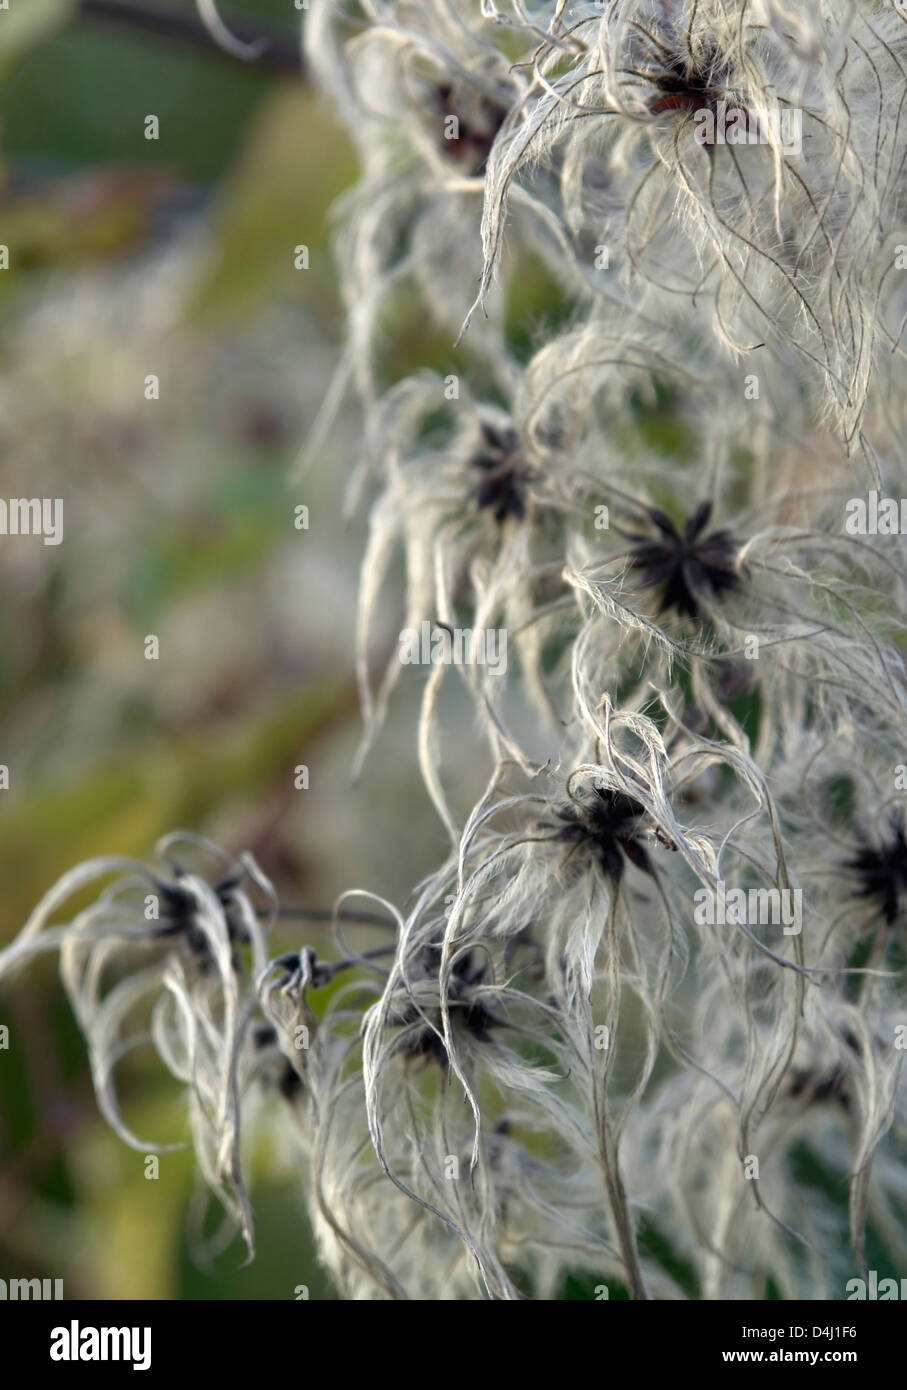 natural background showing a detail of feathered seeds in blurry back - Stock Image